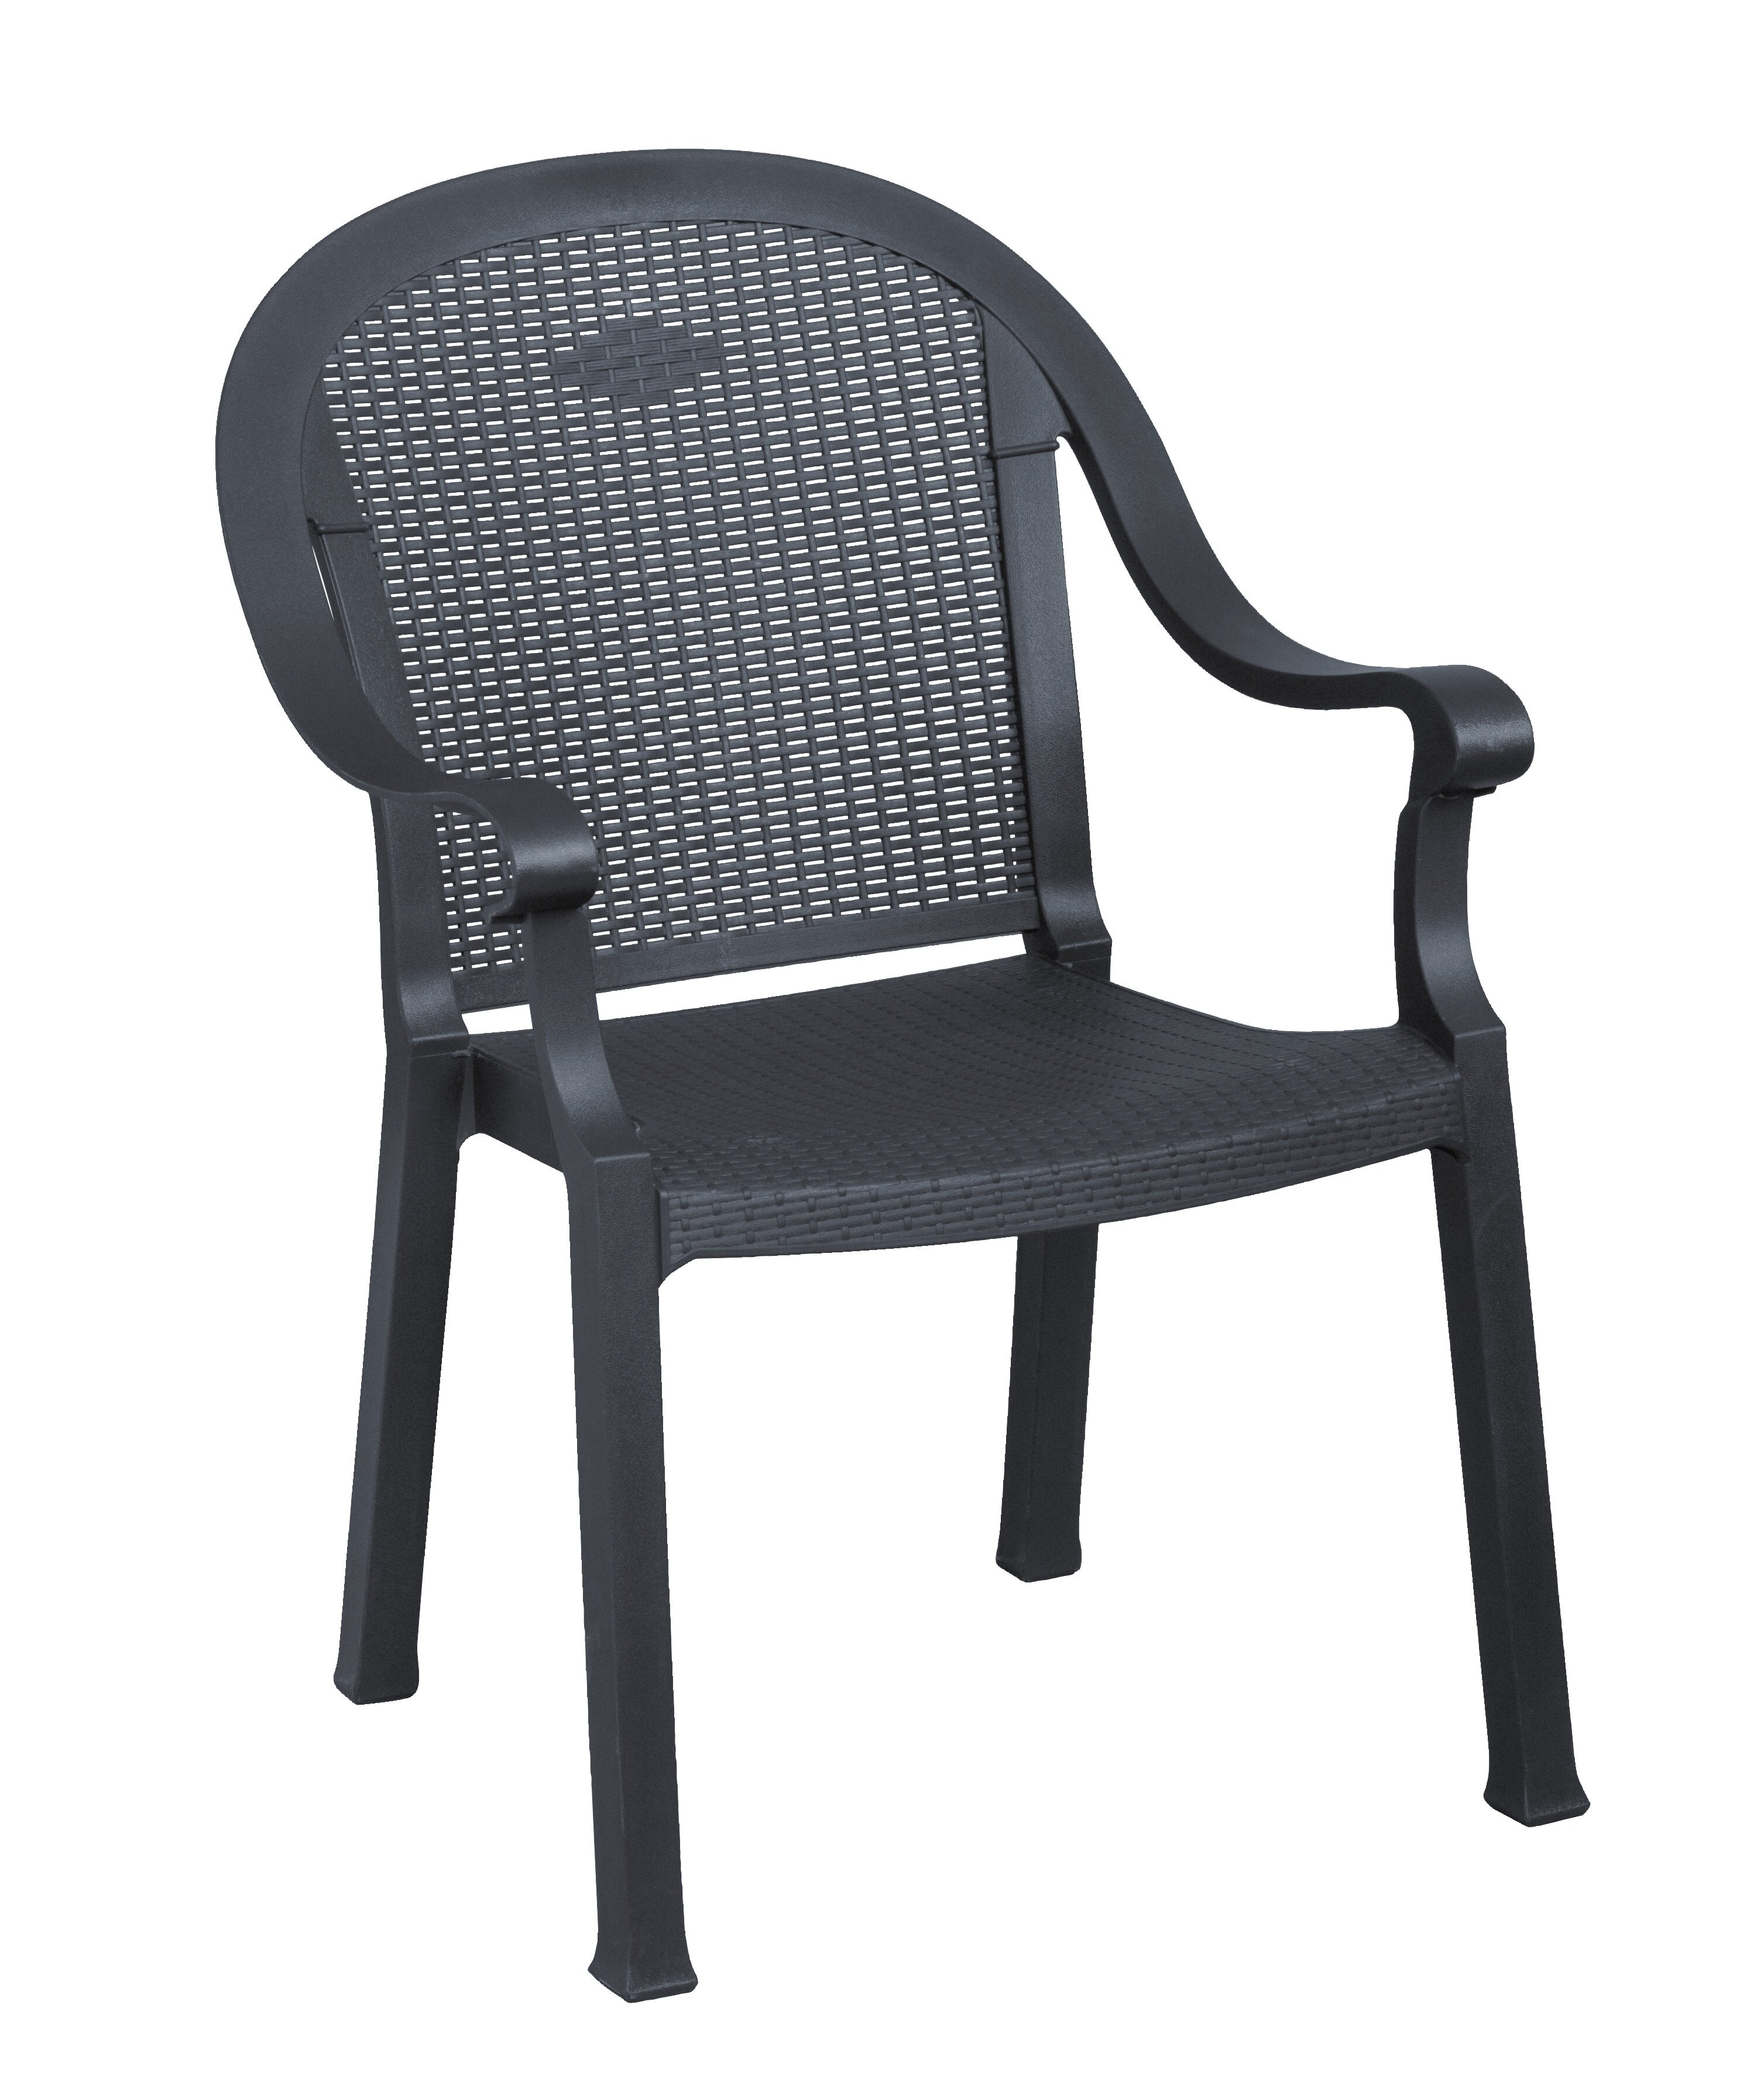 Brilliant Irondale Stacking Patio Dining Chair Gmtry Best Dining Table And Chair Ideas Images Gmtryco